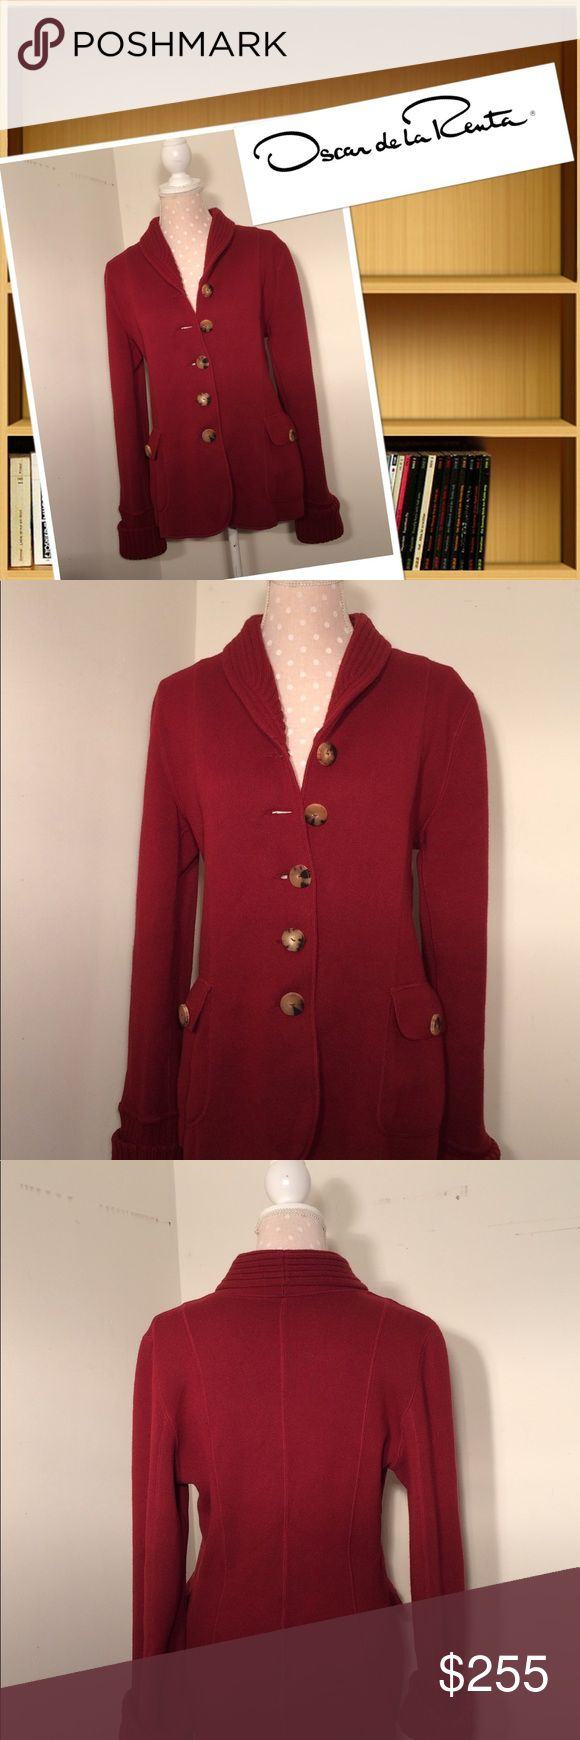 """Oscar De La Renta Cashmere blend cardigan Very good condition  Wine/burgundy  52% wool 29% Cashmere  15% silk 4% elite Made in Italy  24"""" long 33"""" sleeves ( uncuffed) 37"""" bust ( buttoned) 5 center button enclosure  Nonsmoker seller  20% off 3 or more items Oscar de la Renta Tops Tunics"""